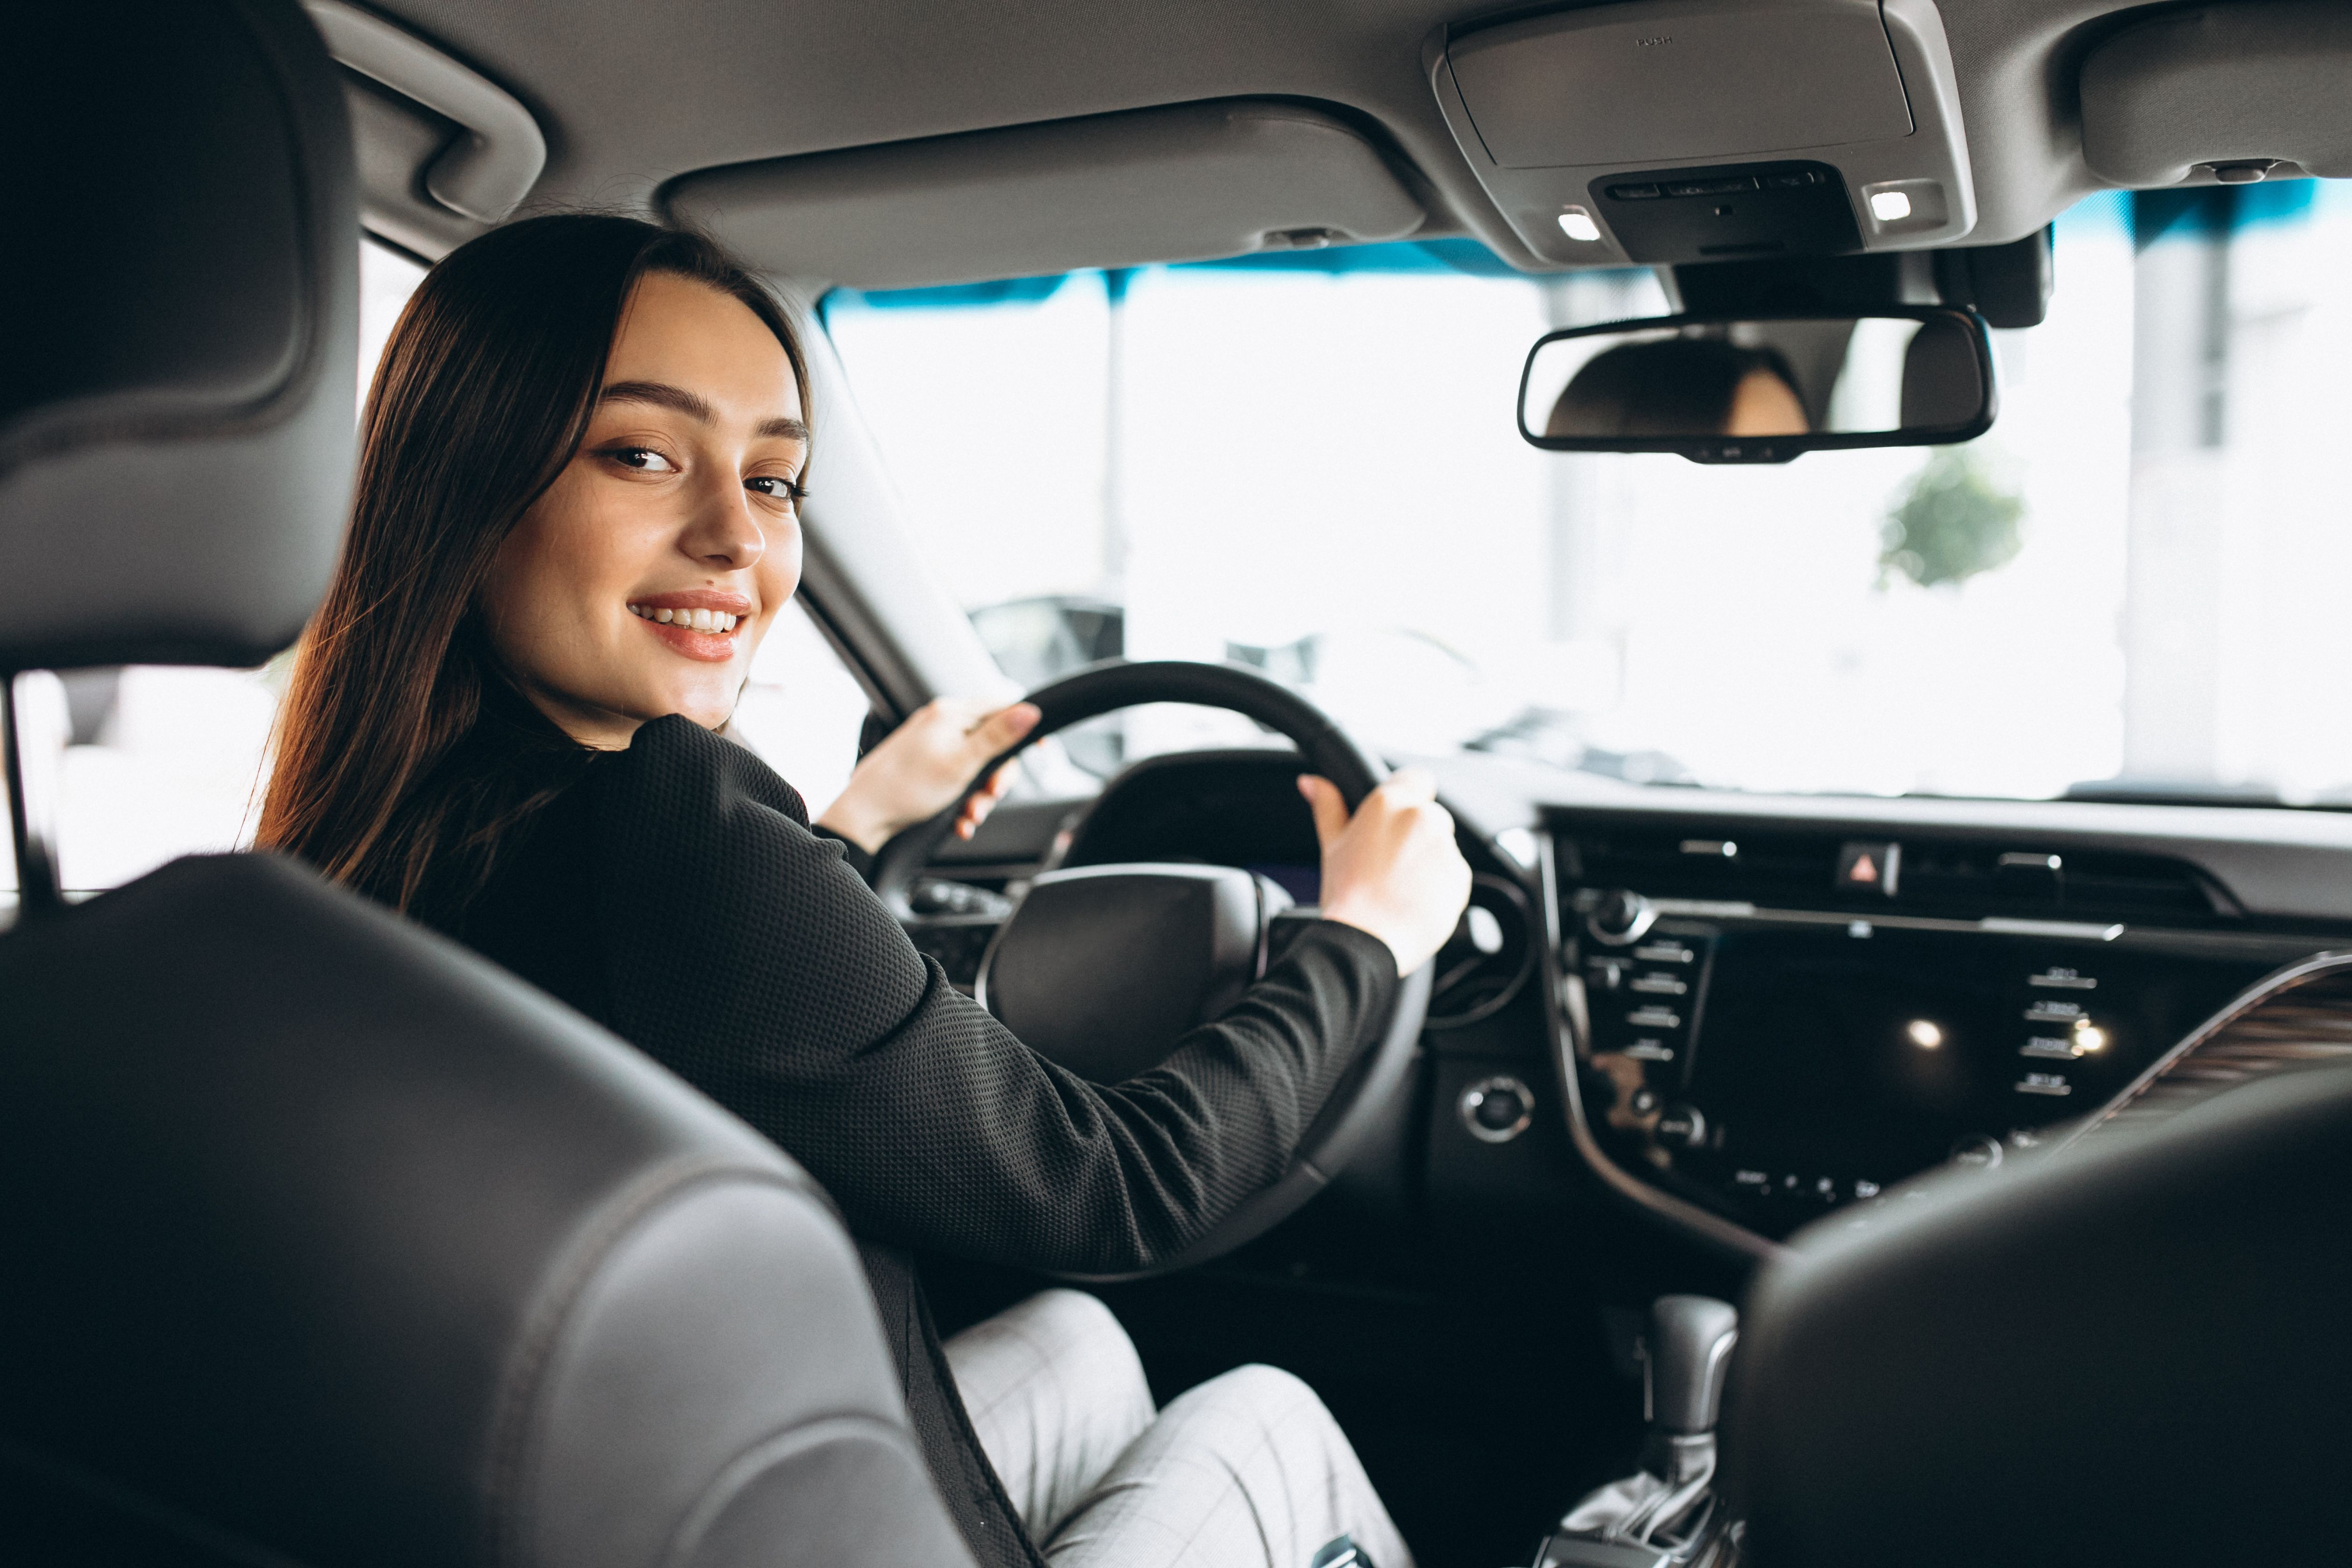 Rides Of Monthly Car Rental Dubai Services In 2020 Car Rental Company Airport Car Service Airport City